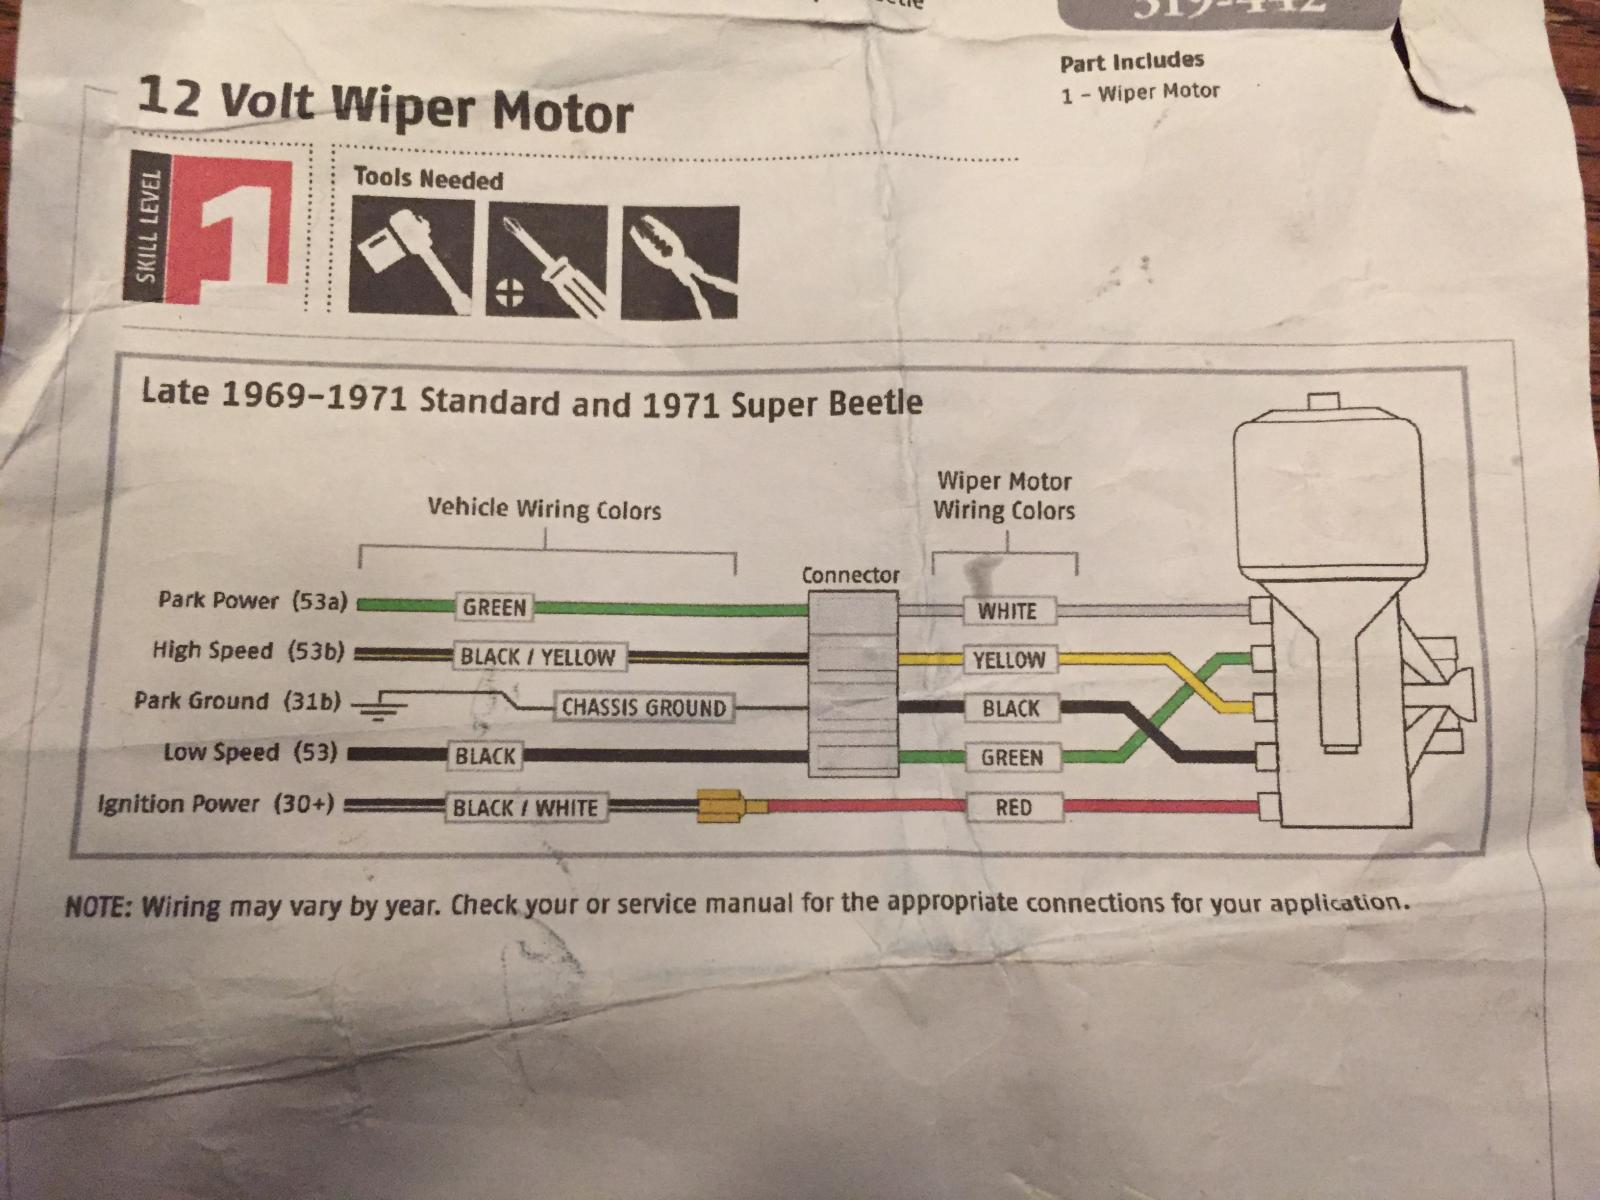 [DIAGRAM_38IU]  2CDD Vw Beetle Wiper Motor Wiring Diagram Schematic | Wiring Library | 2007 Vw New Beetle Wiper Motor Wiring Diagram |  | Wiring Library